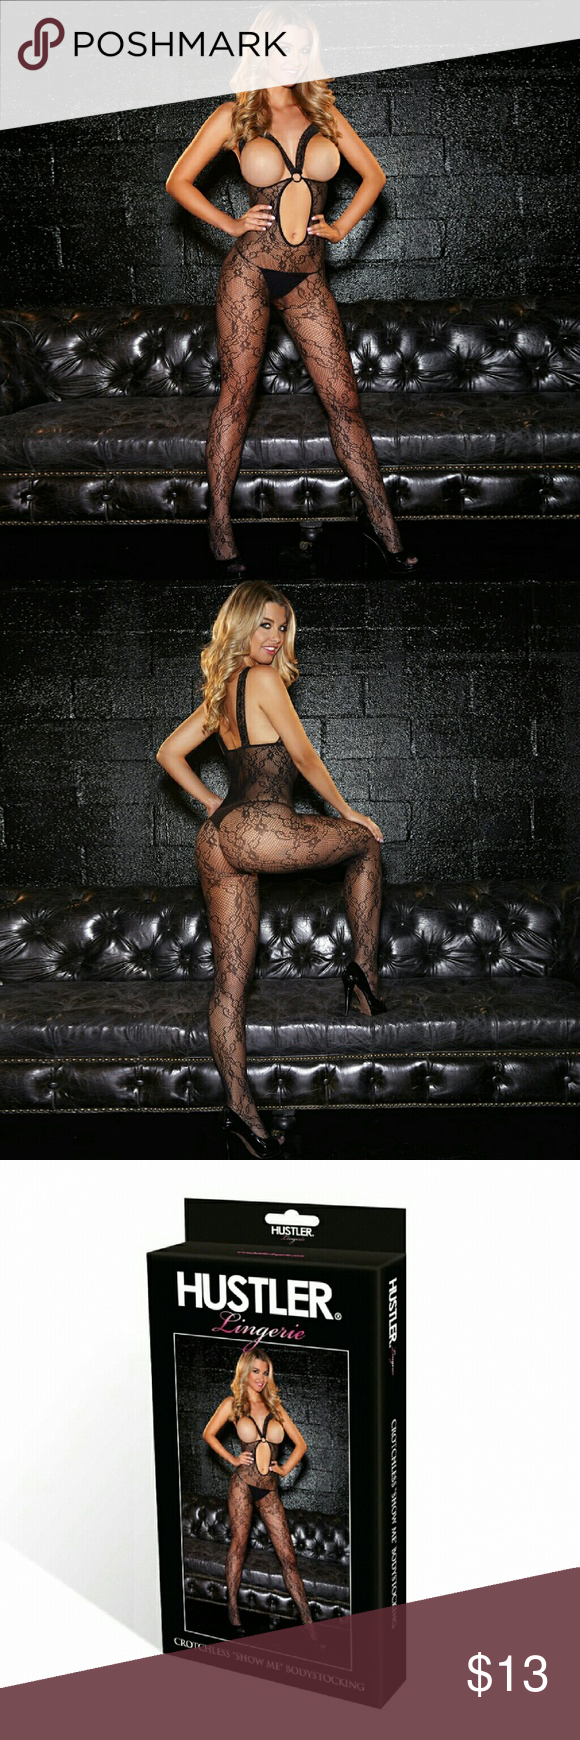 17fd895fb Hustler Lingeries Crotchless Show Me Bodystocking The crotchless show me  bodystocking leave very little imagination with a bold design that meant  for show ...